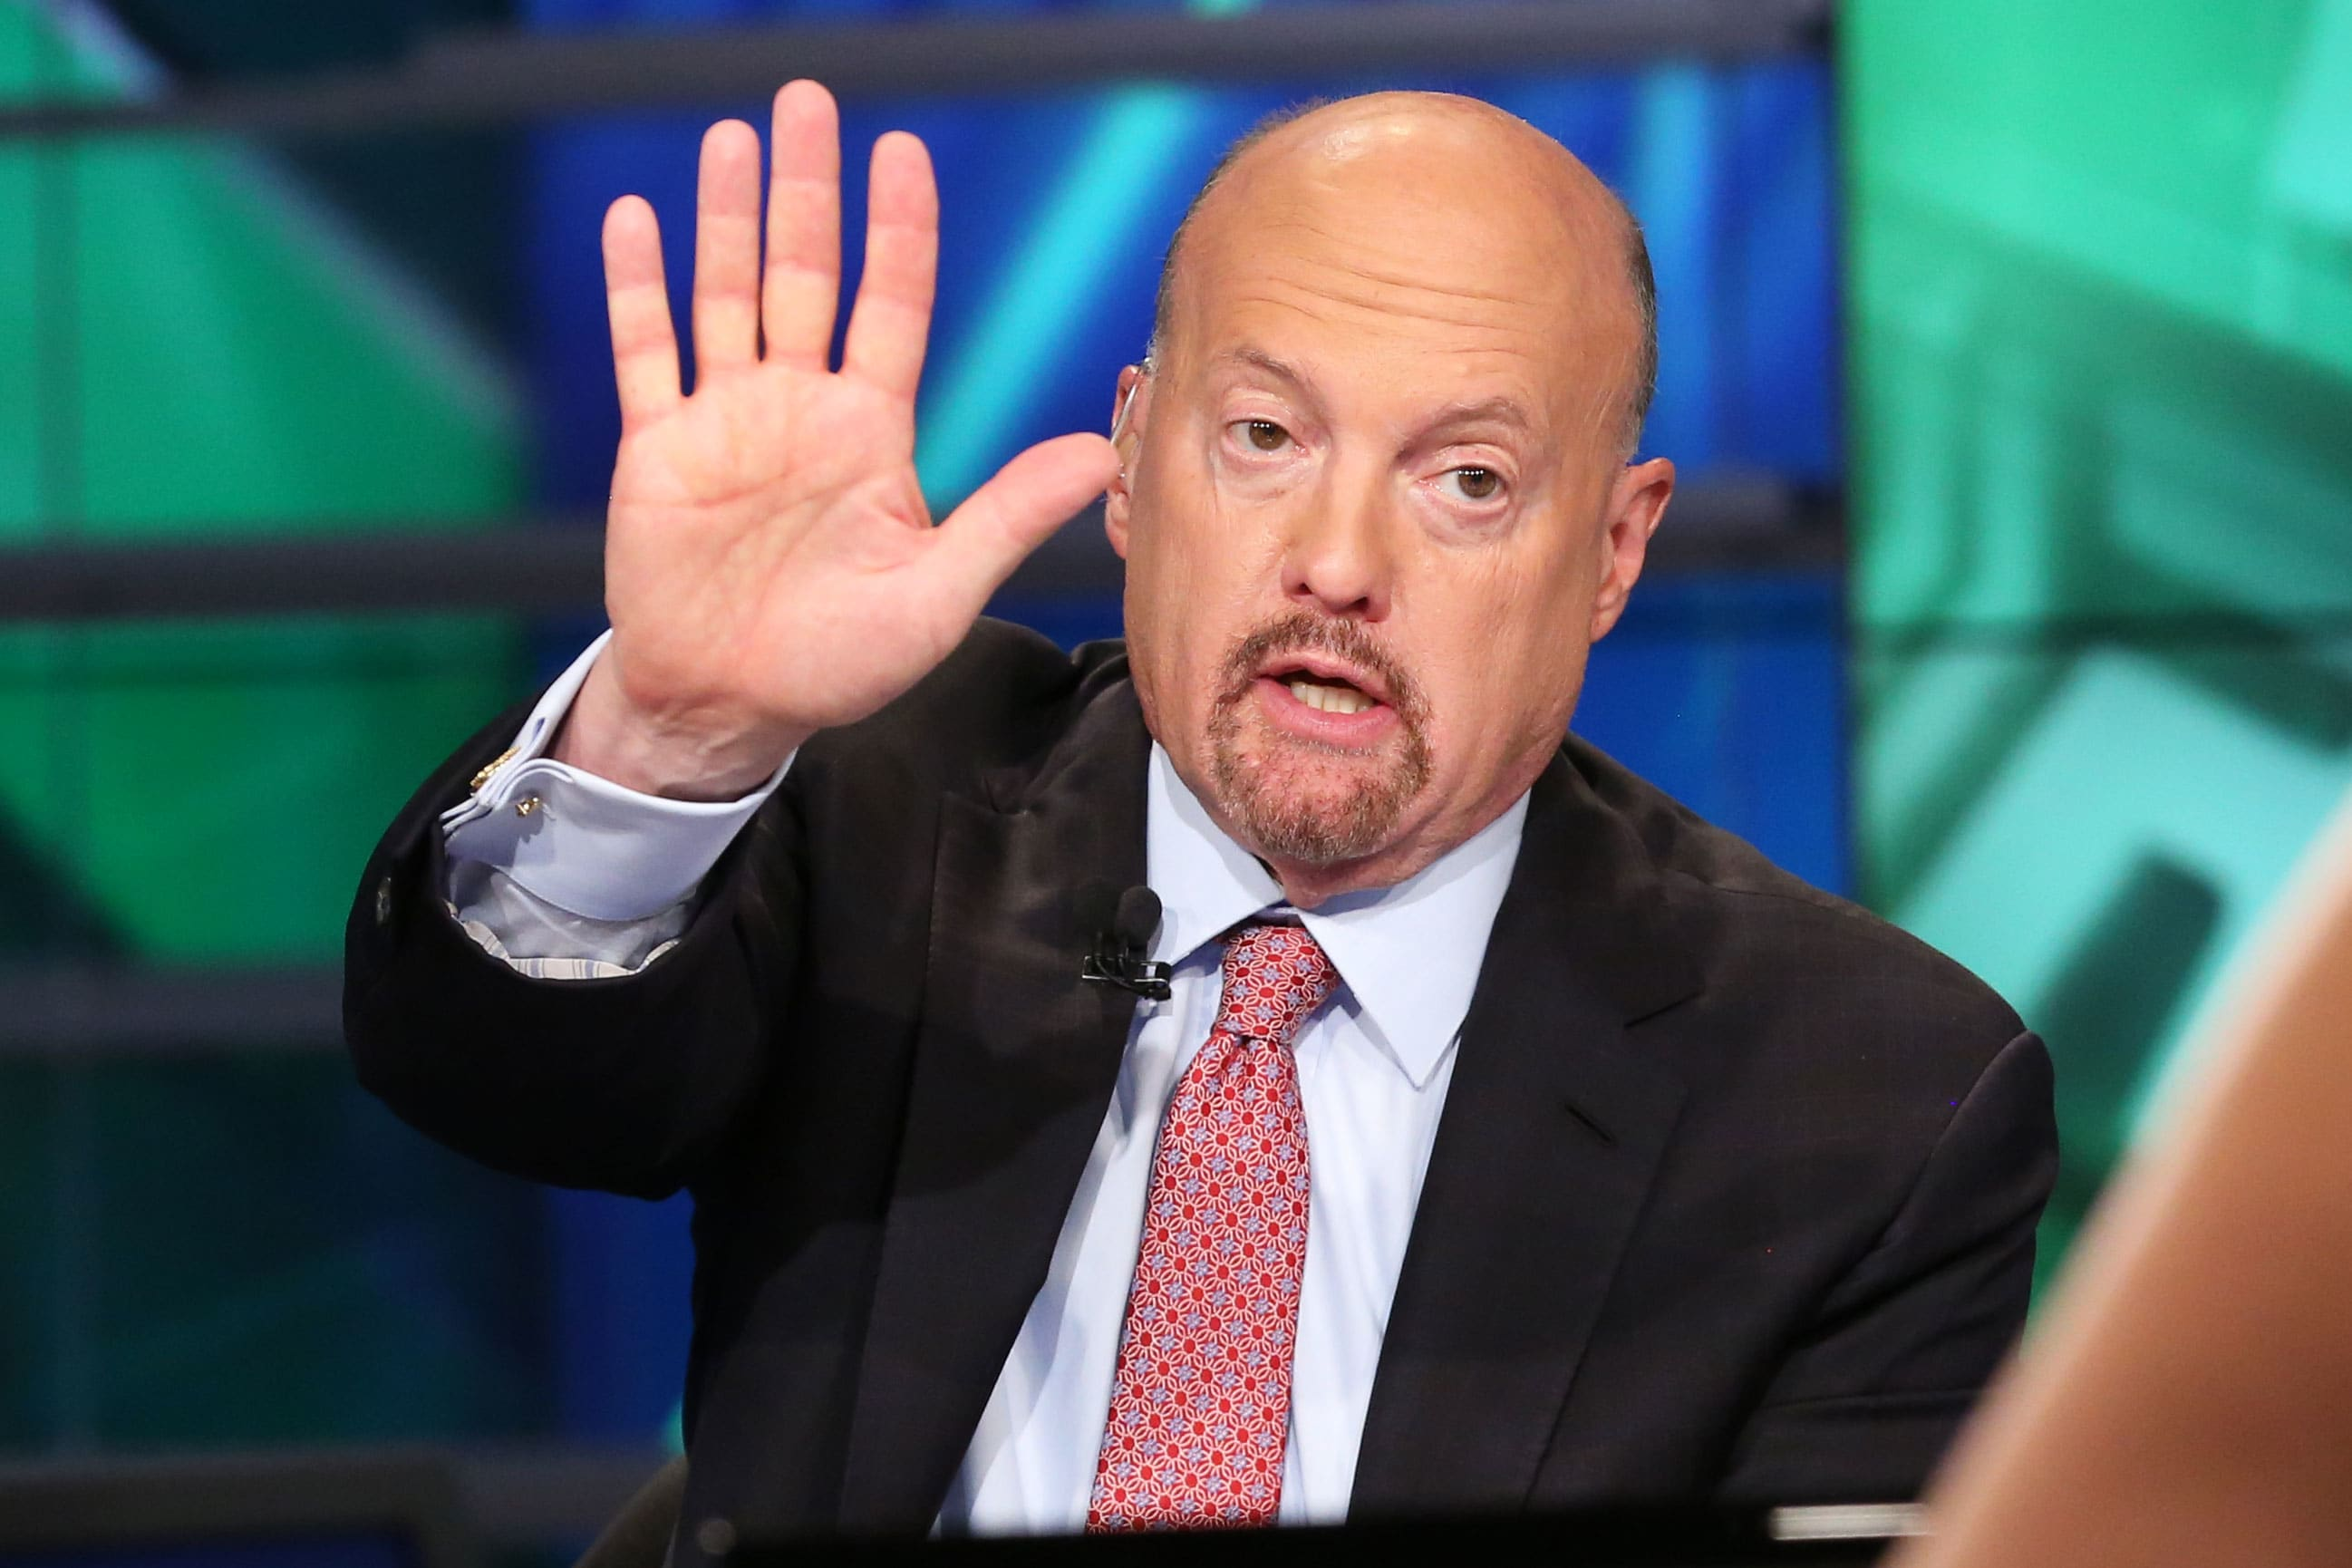 'Unfathomable market' — Jim Cramer warns against buying or selling on US-China trade headlines